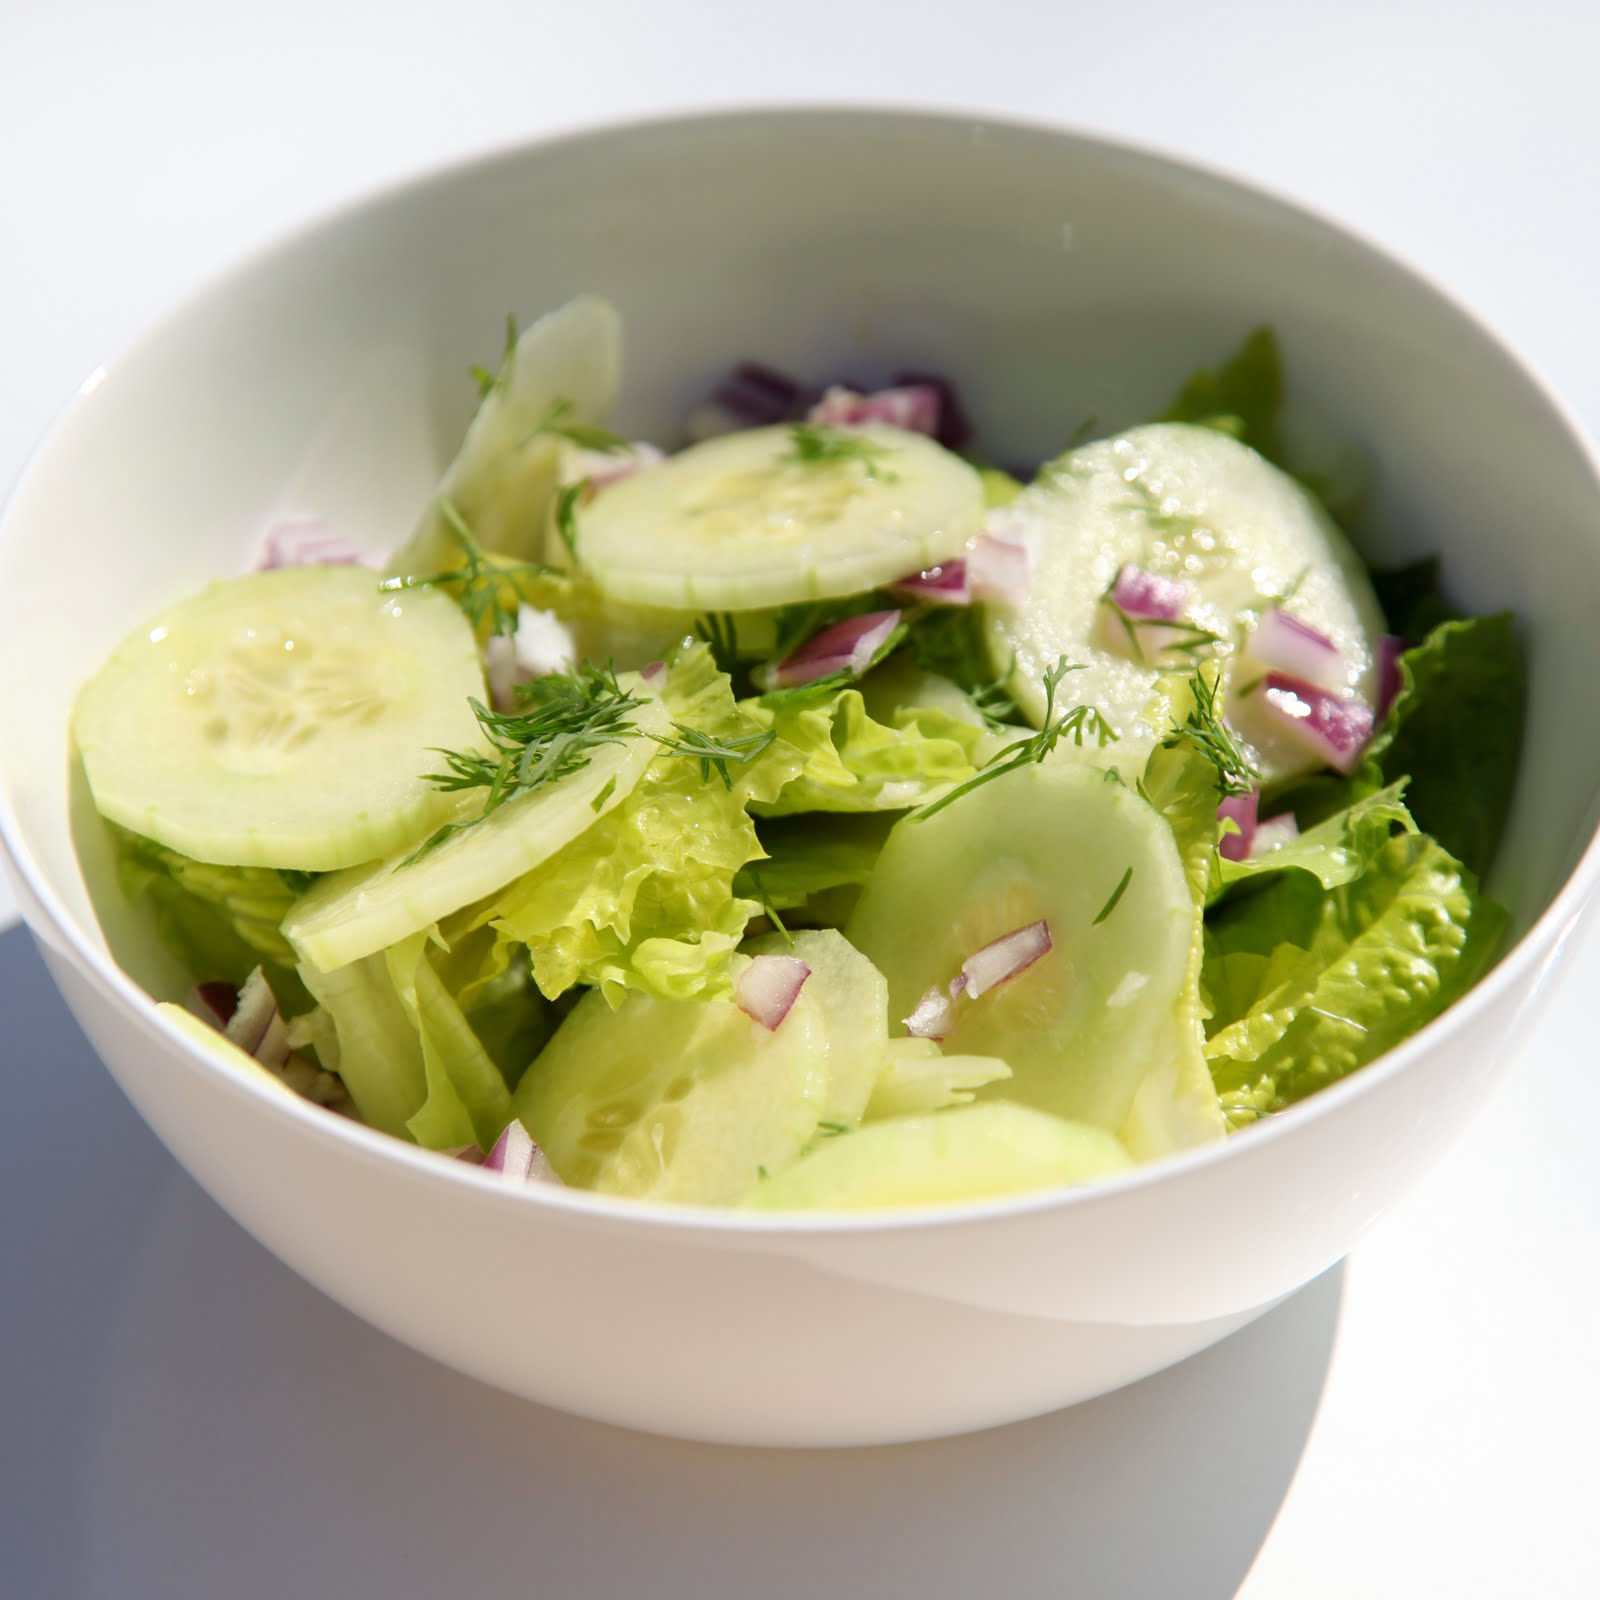 The 10 cent Diet: Fresh Cucumber & Dill Salad